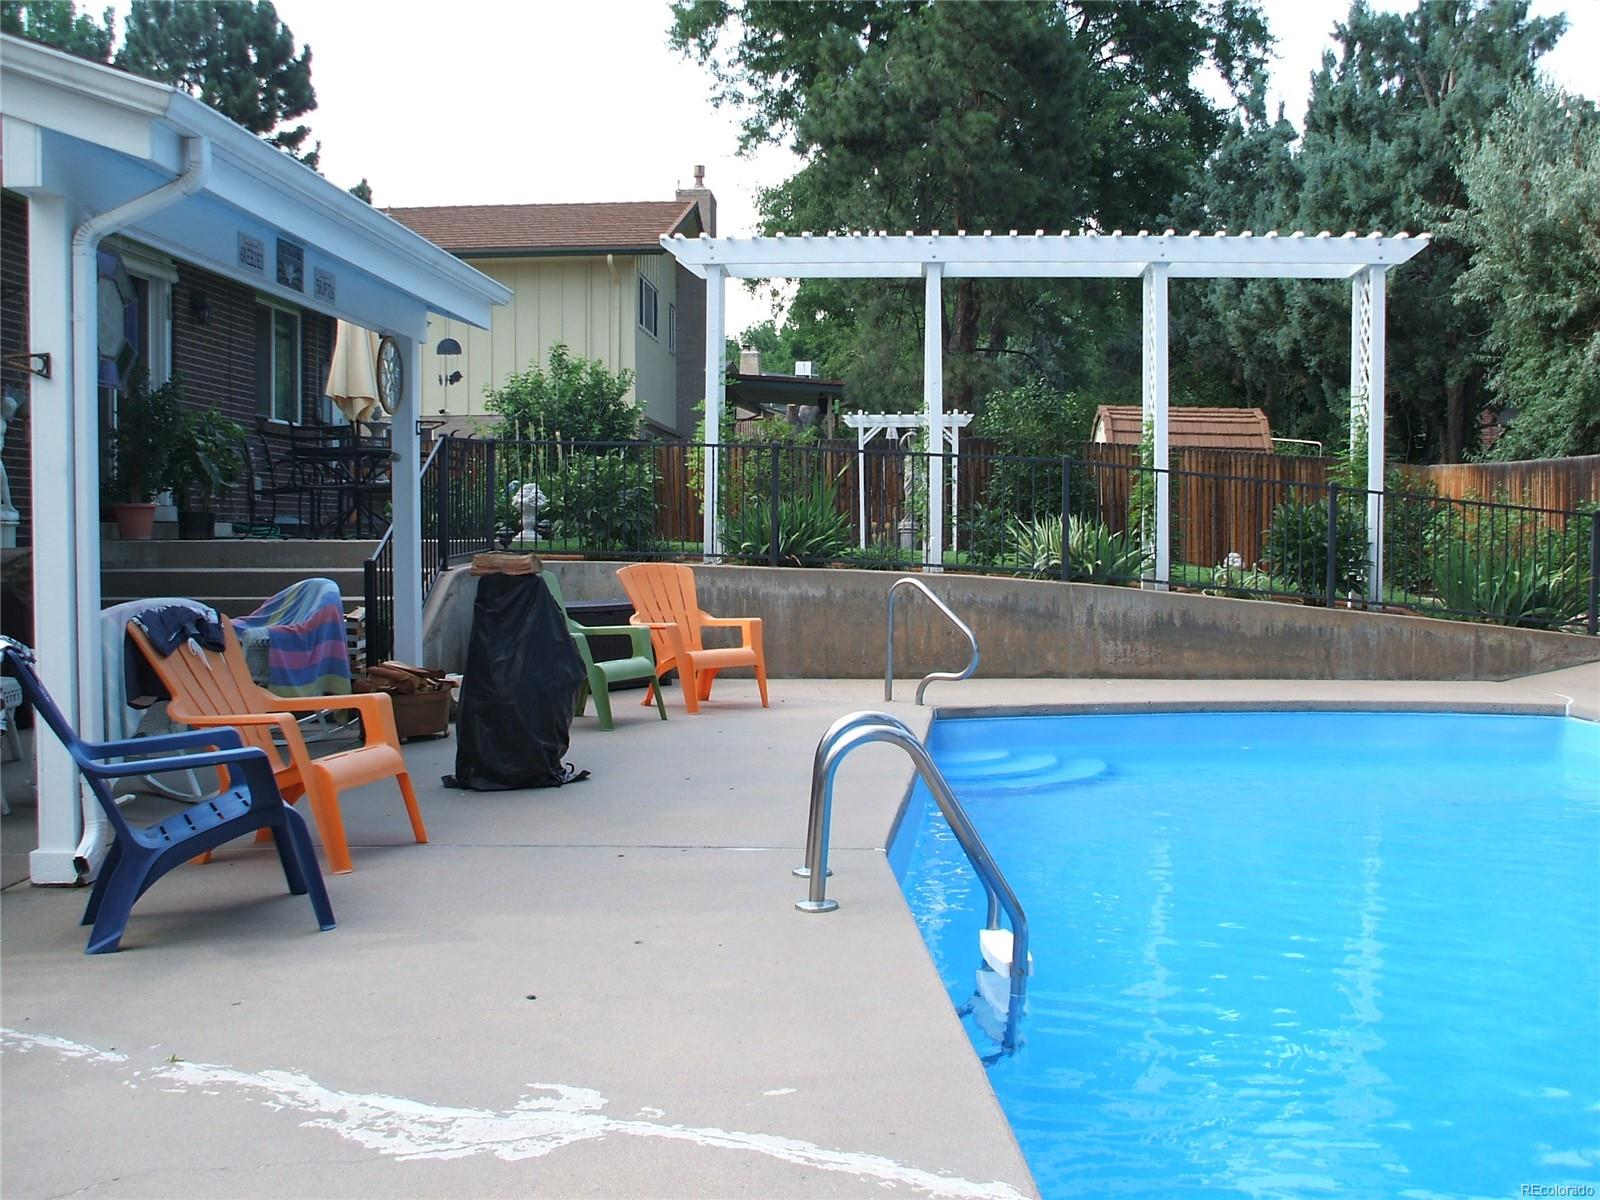 Summer view of this beautiful pool and backyard